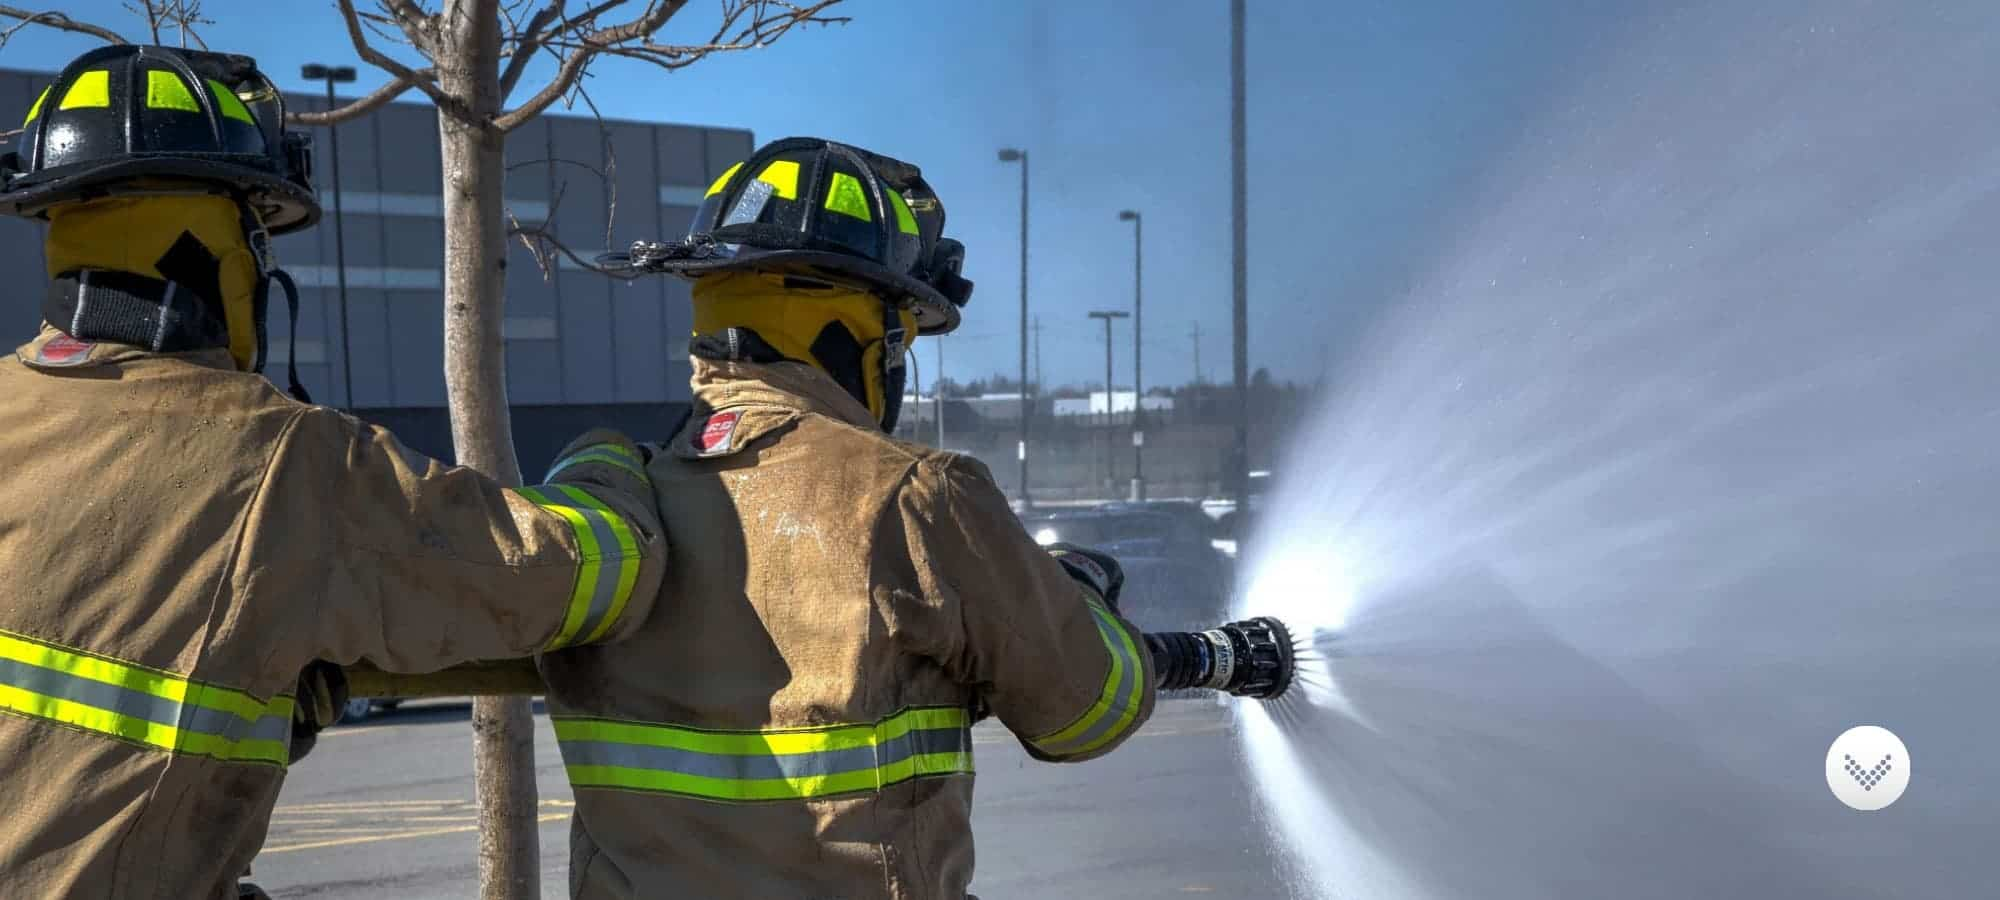 Two fire fighters dispensing water from a fire hose.